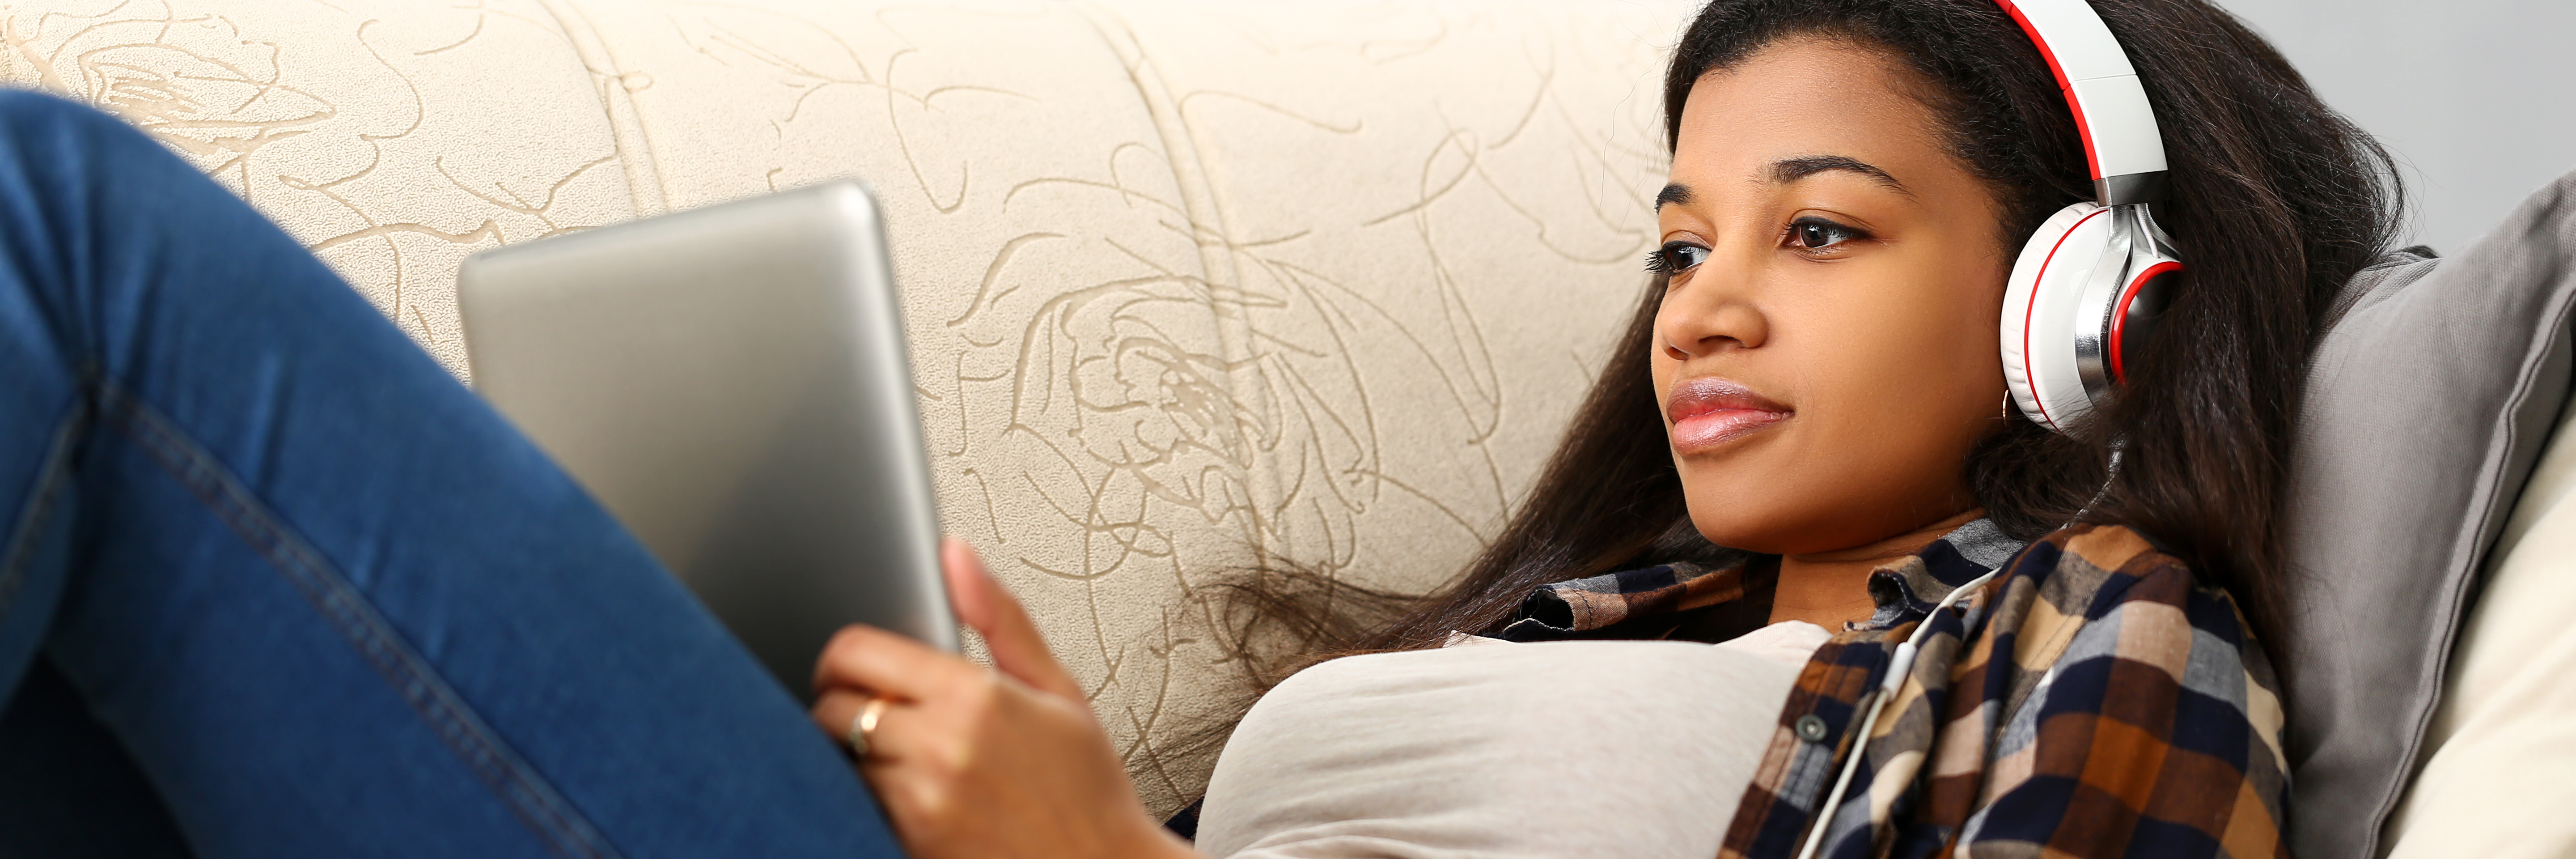 POC woman with headphones looking at IPAD